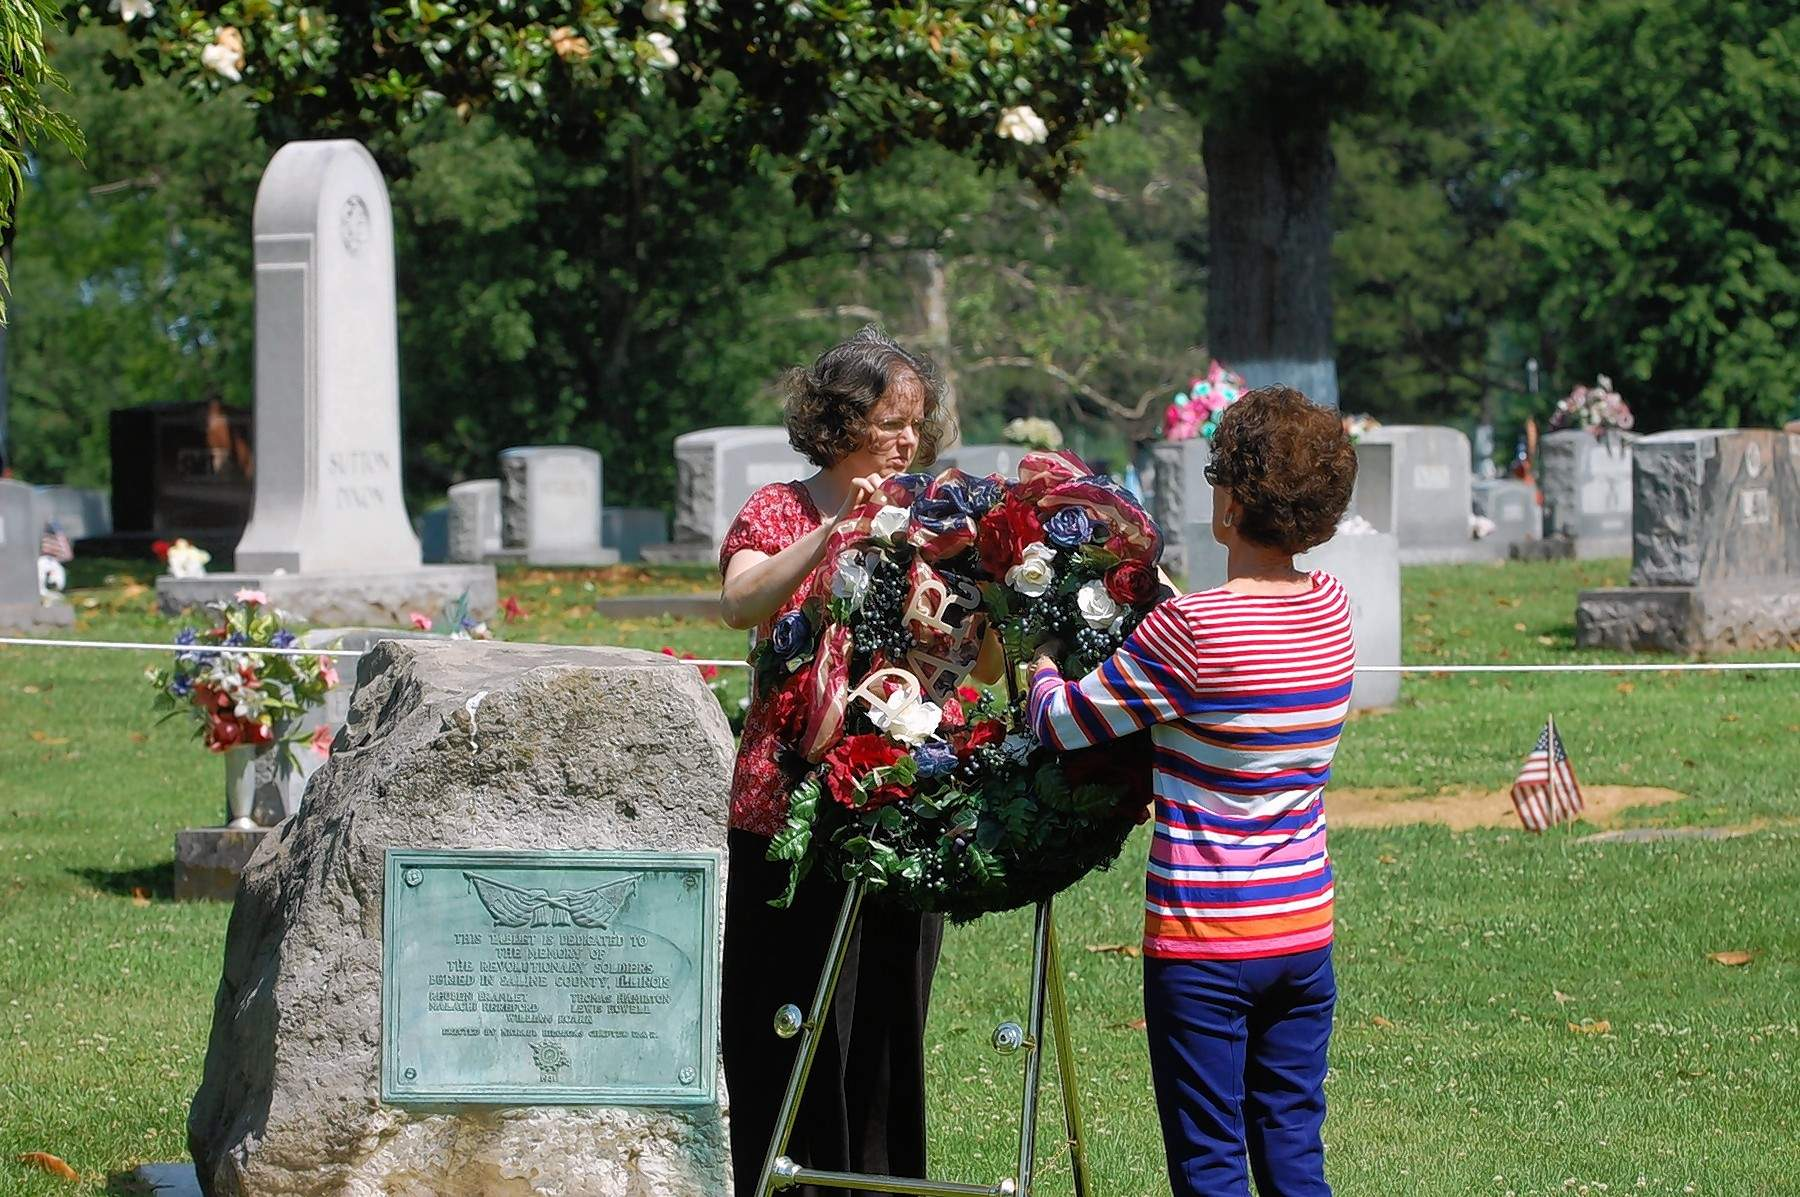 Daughters of the American Revolution members Sarah Drone, left, and Candy Duncan Evans place a wreath at Harrisburg's Memorial Day service Monday.